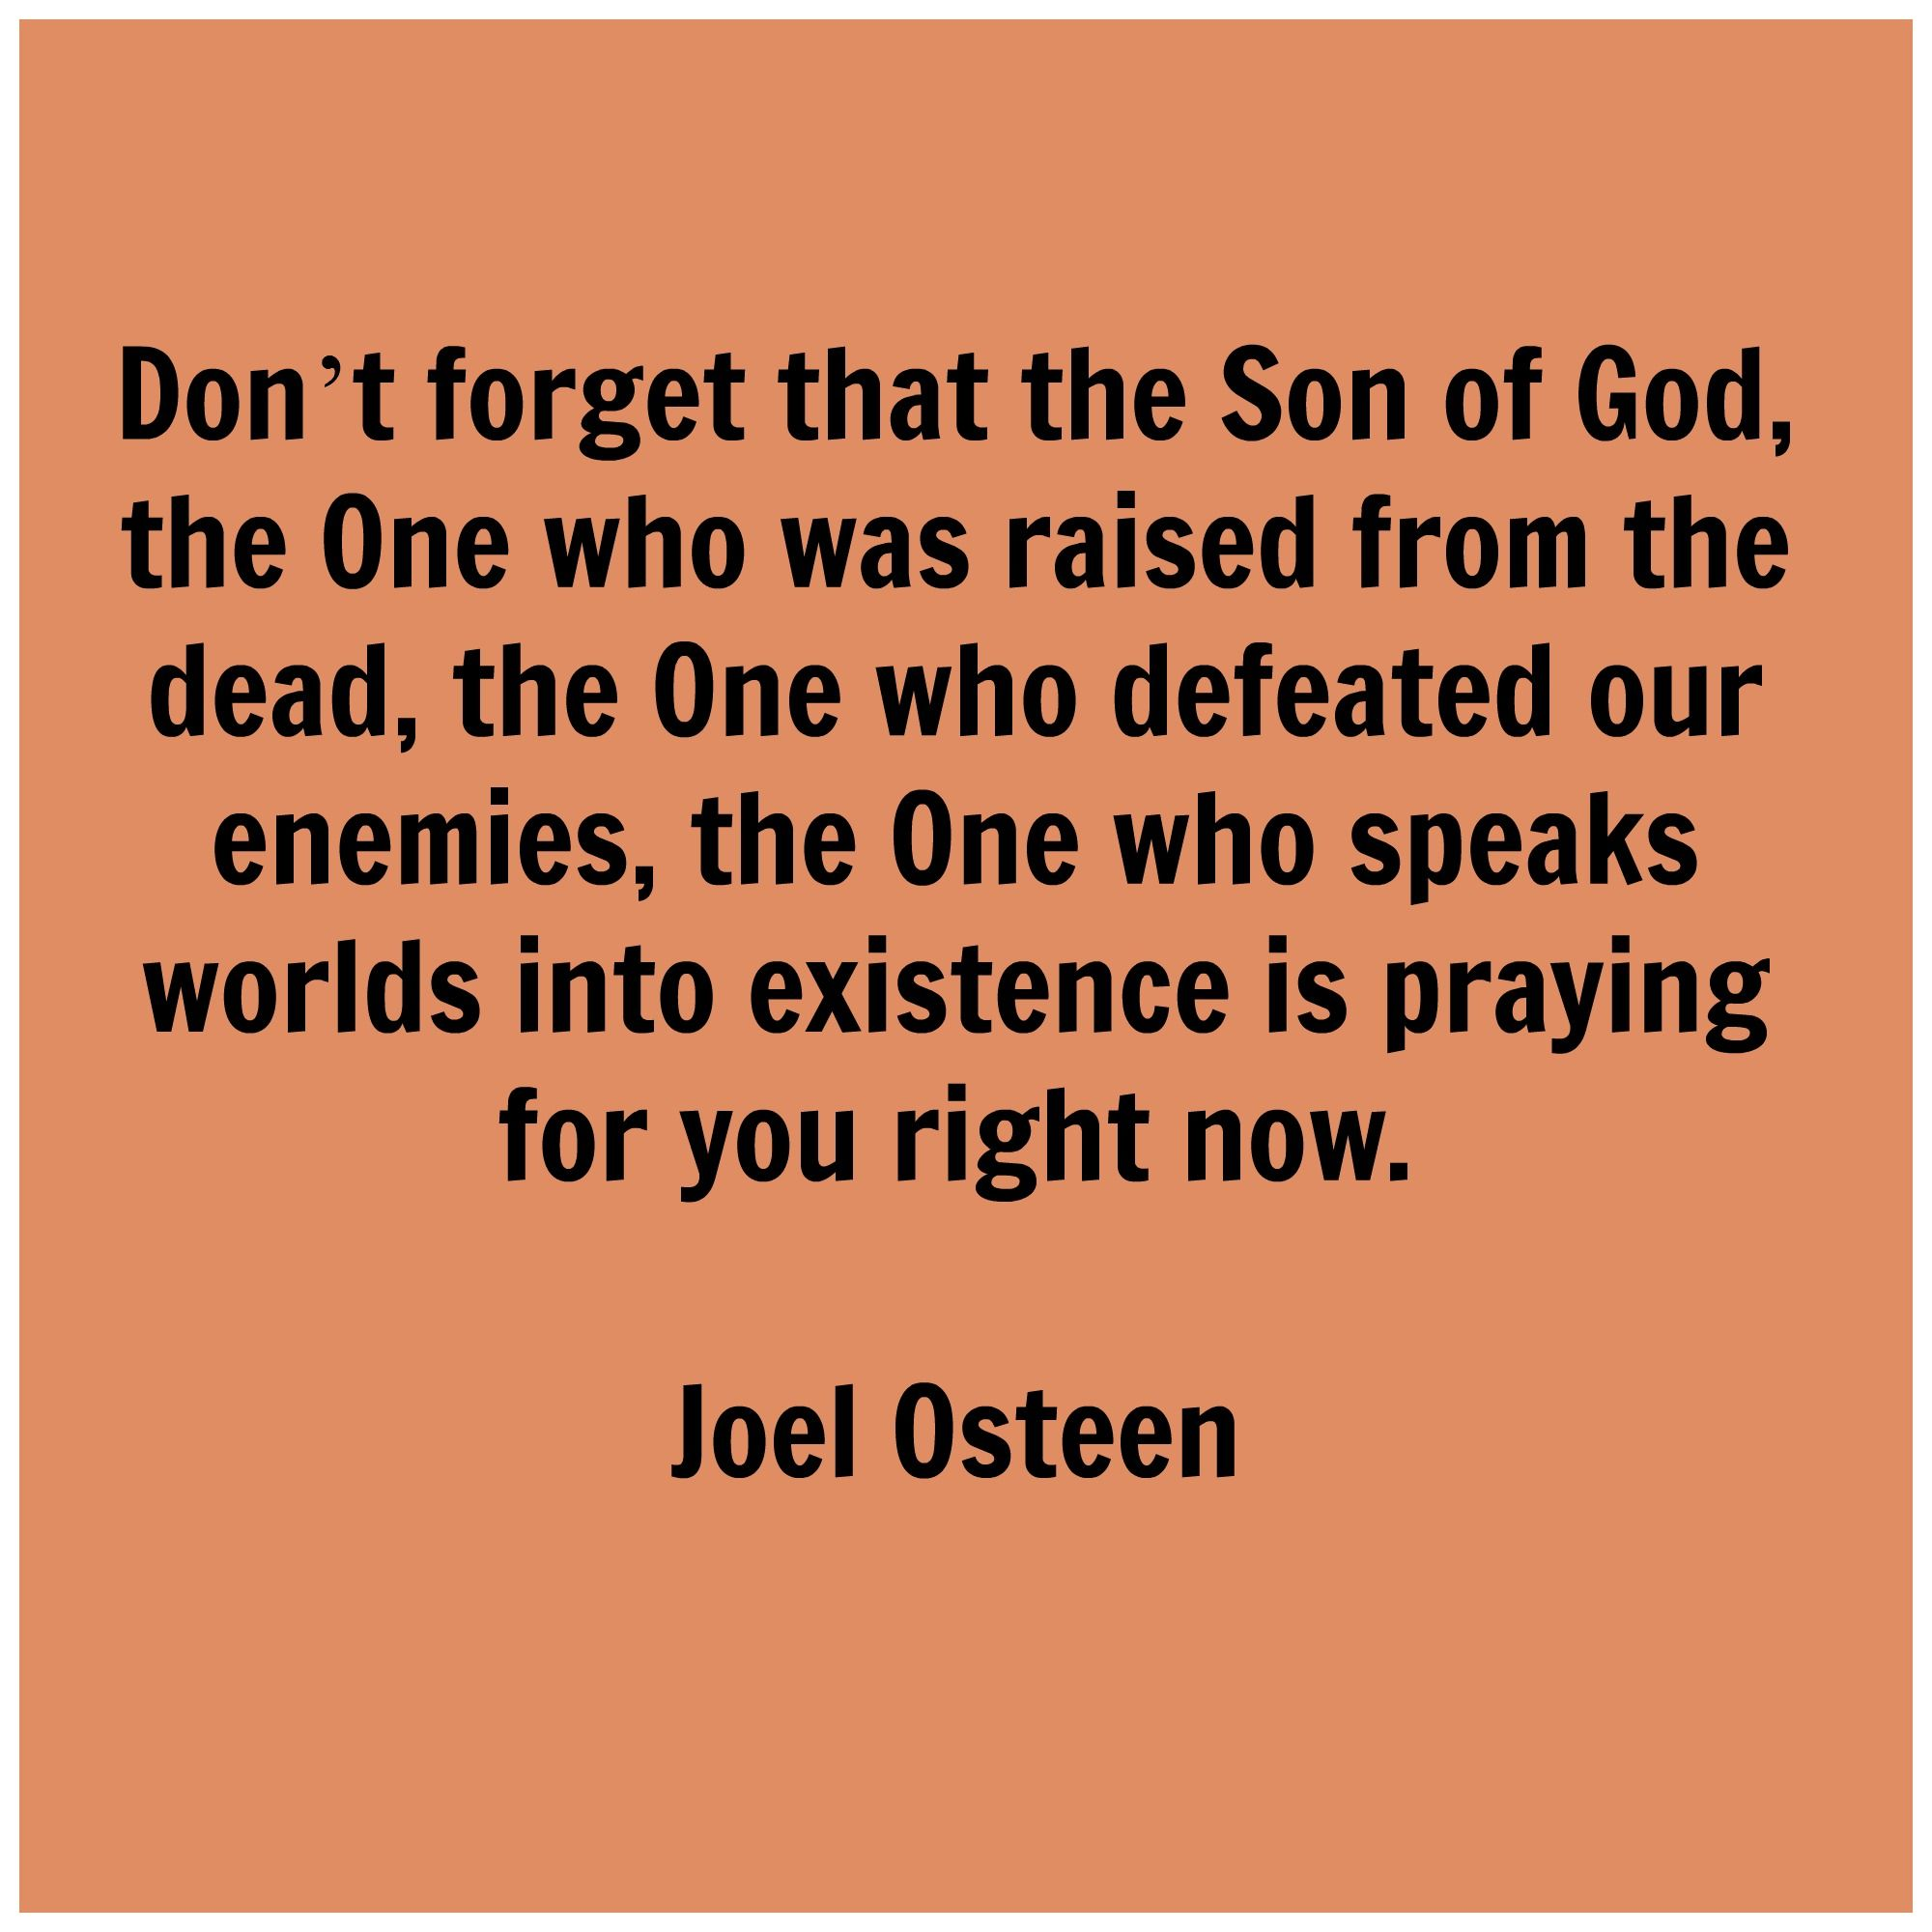 Praying Quotes Don't Forget That The Son Of God The One Who Was Raised From The